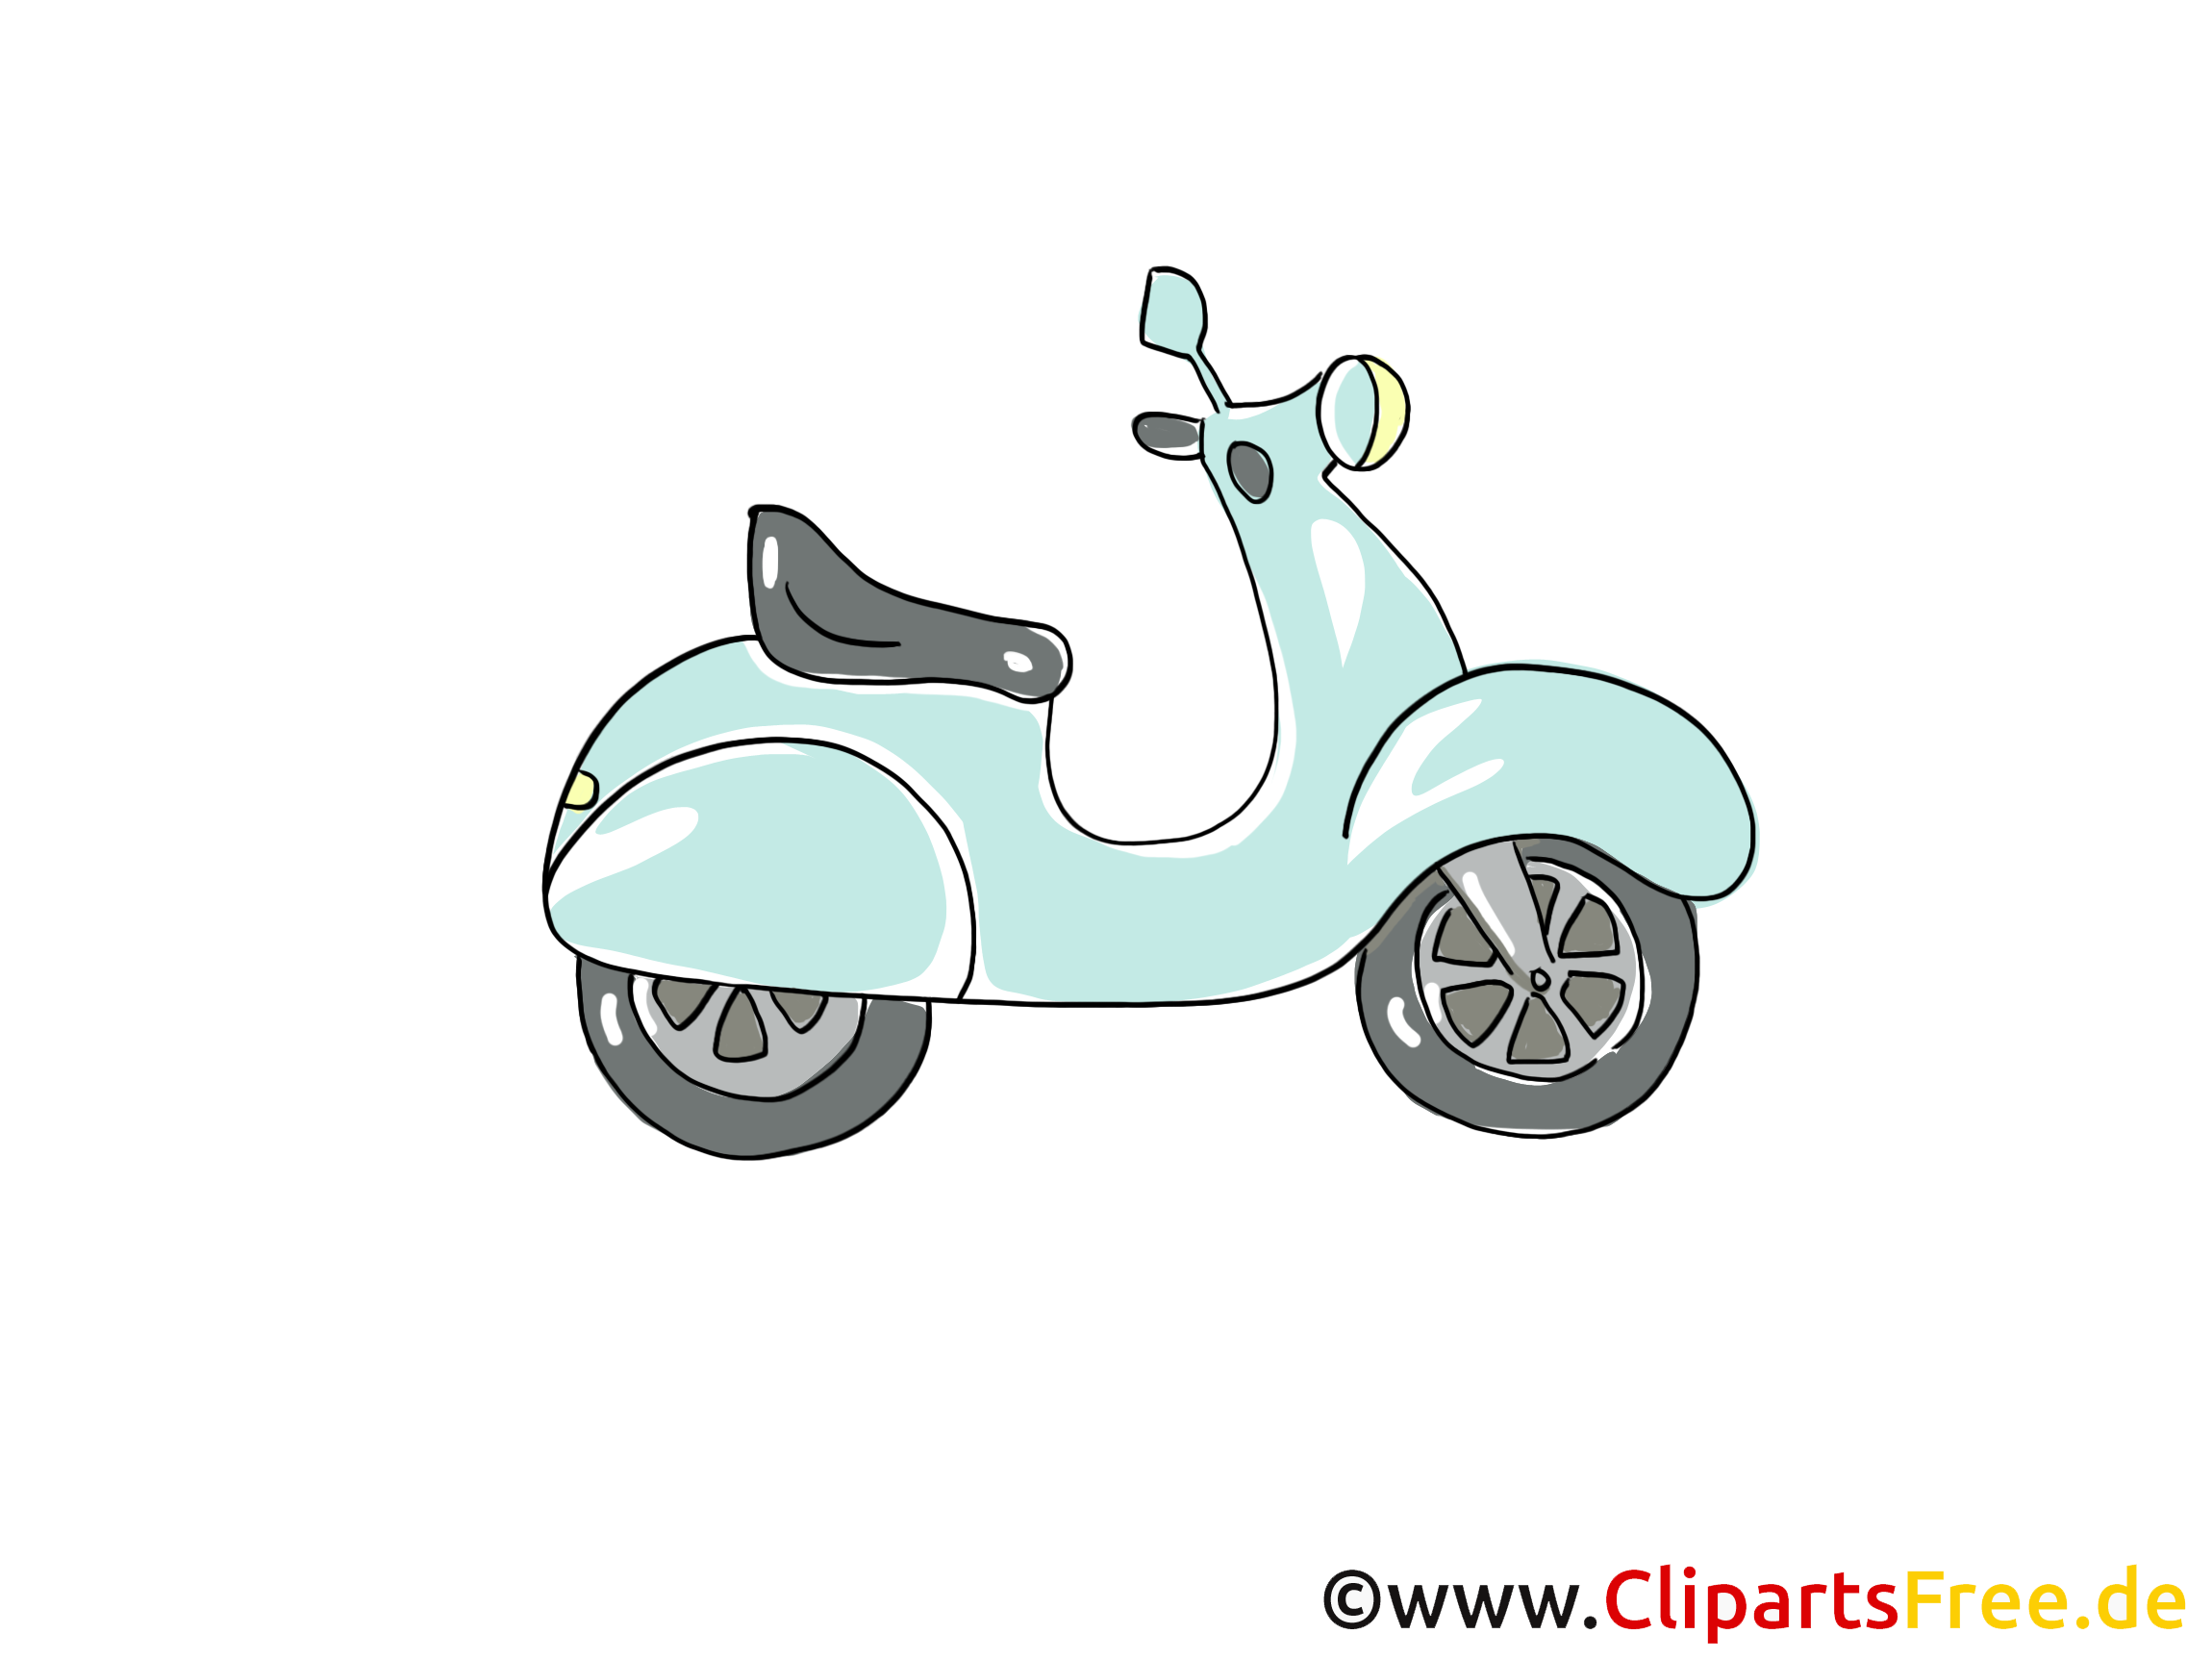 Mofa Clipart, Bild, Cartoon, Comic, Grafik